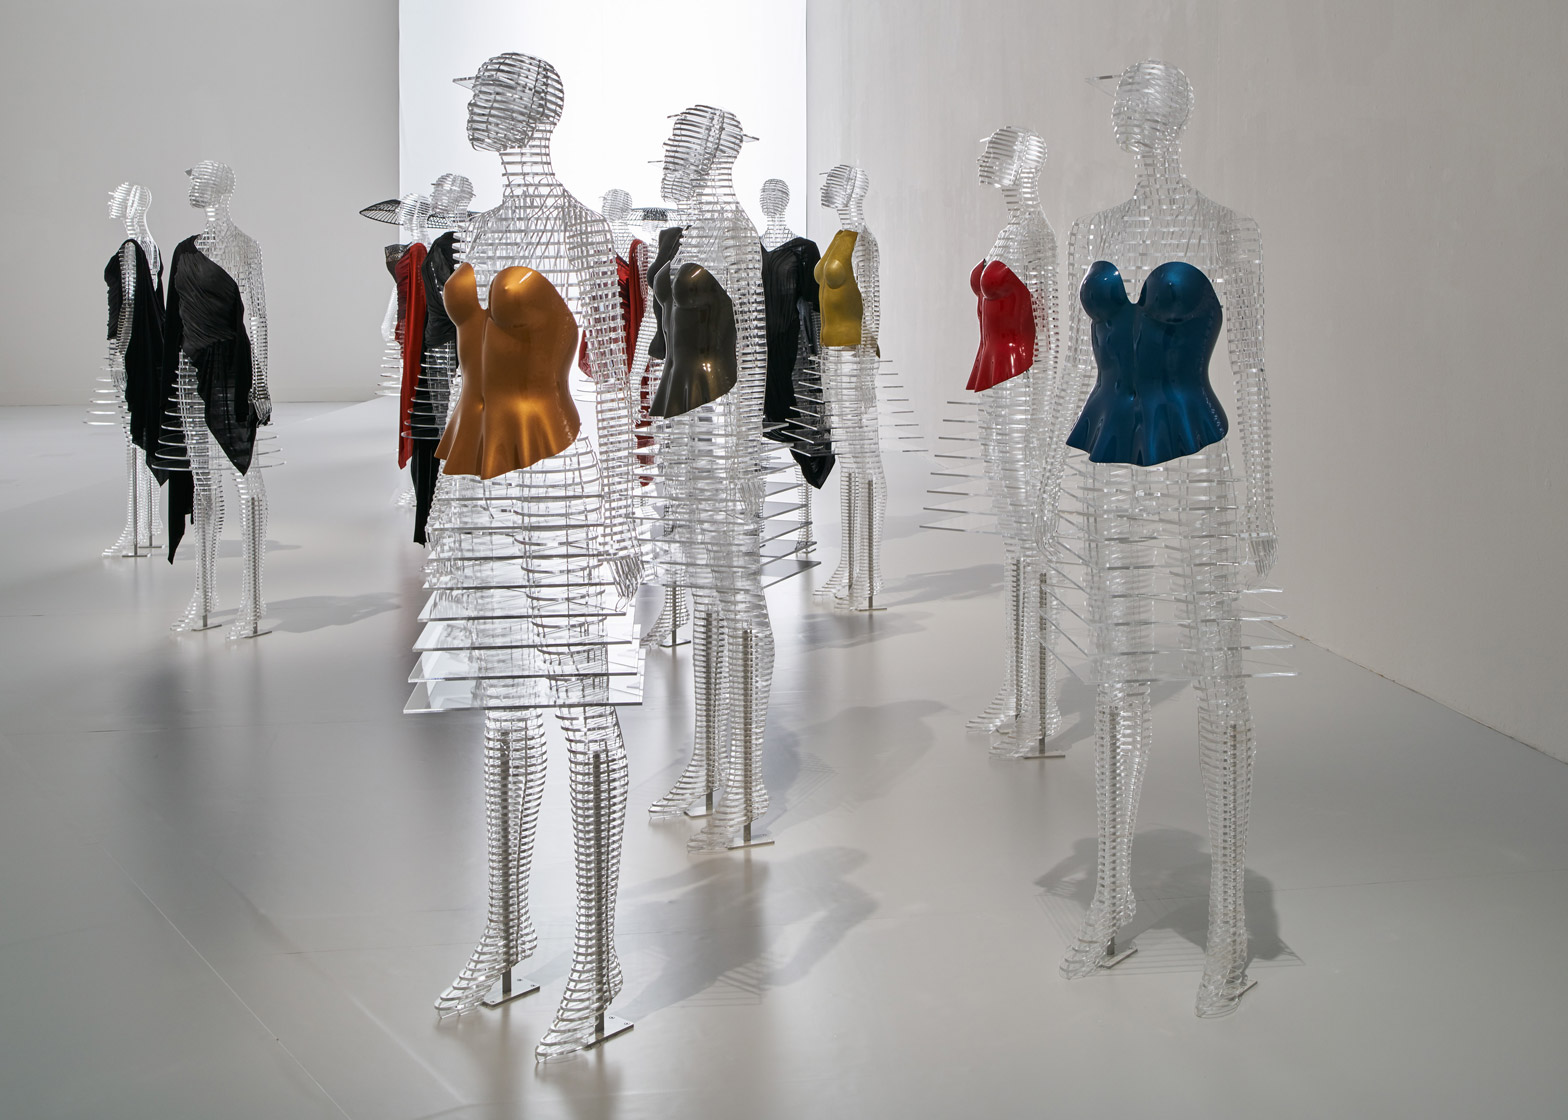 45 years of Issey Miyake designs are on display in a